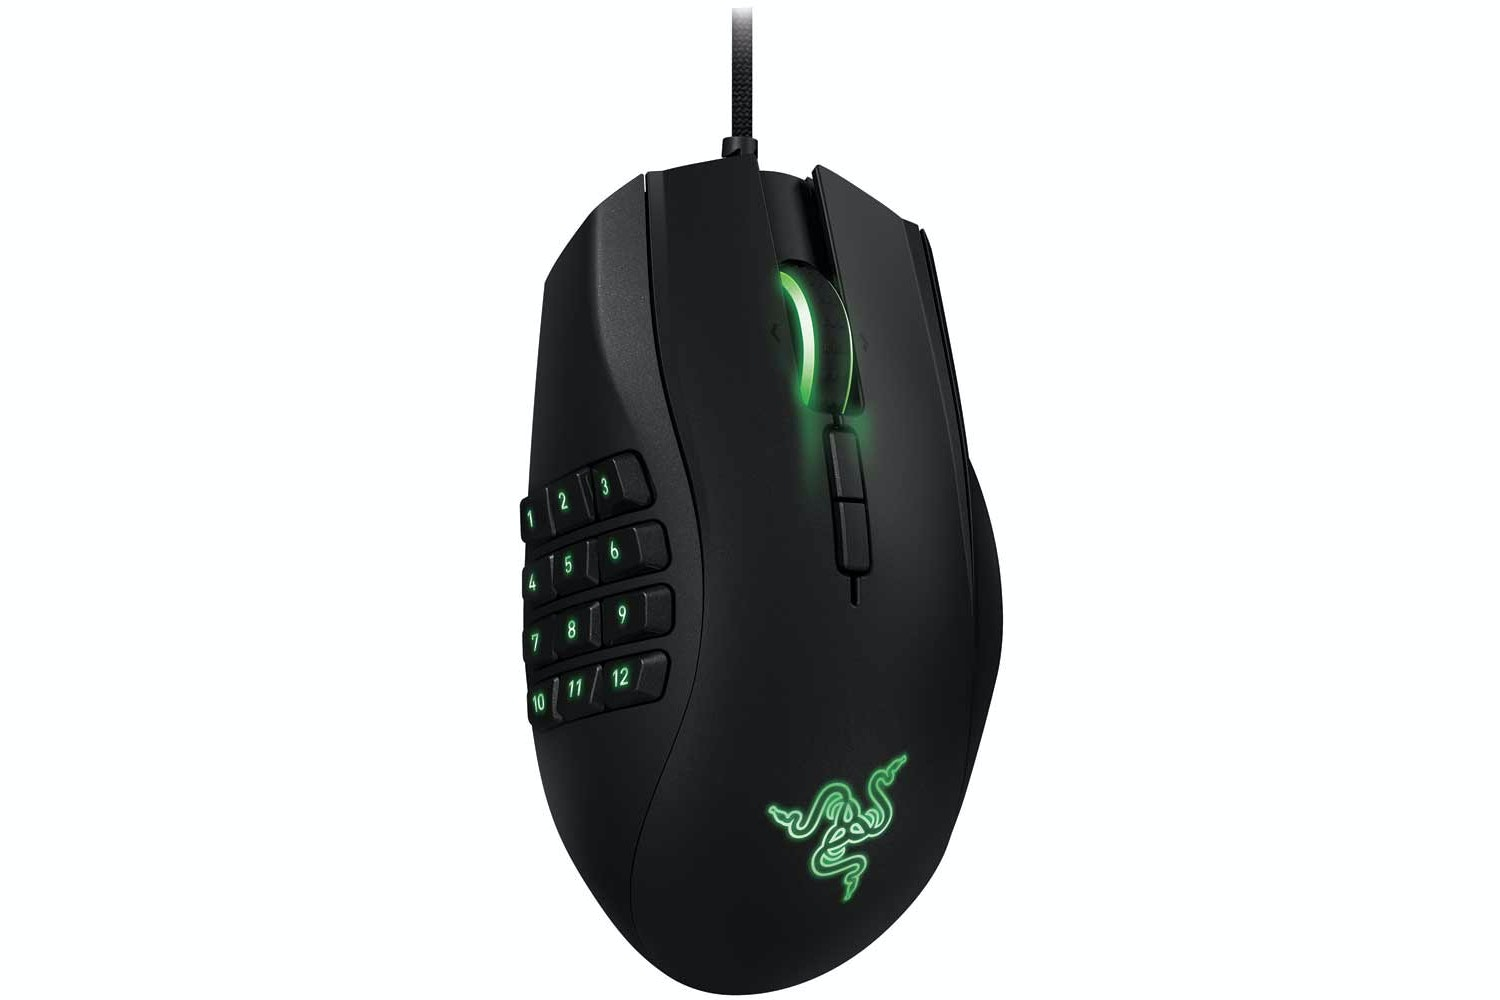 Razer Naga Chroma Gaming Mouse